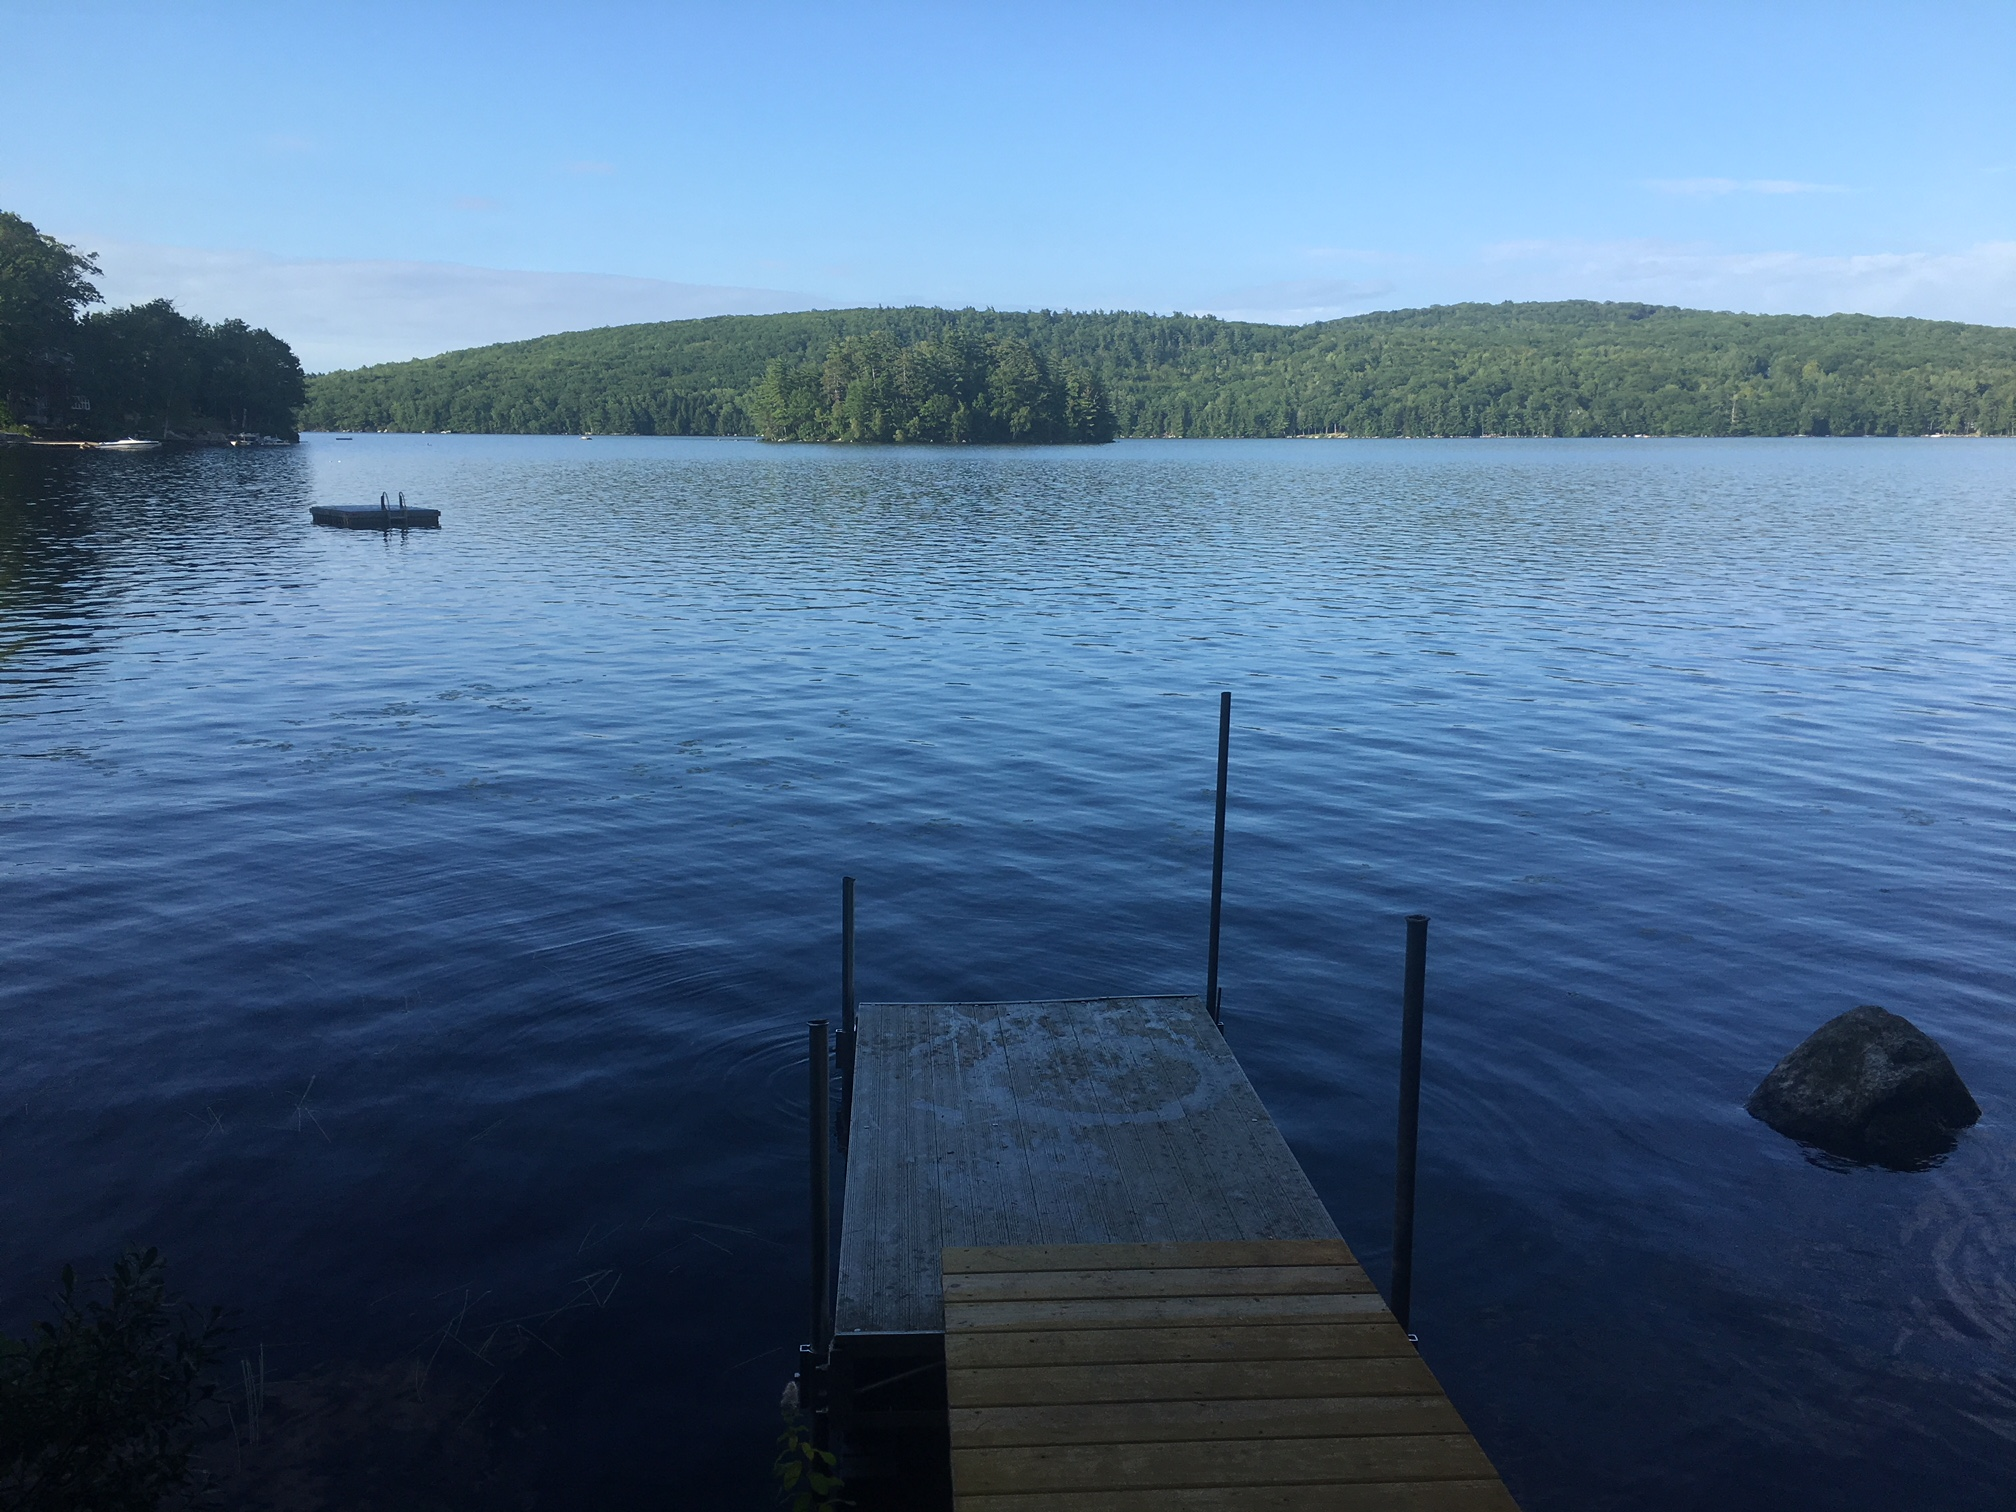 This dock was at the back of Mary's AirBnB property. I kayaked around the Island and swam to the floating dock.